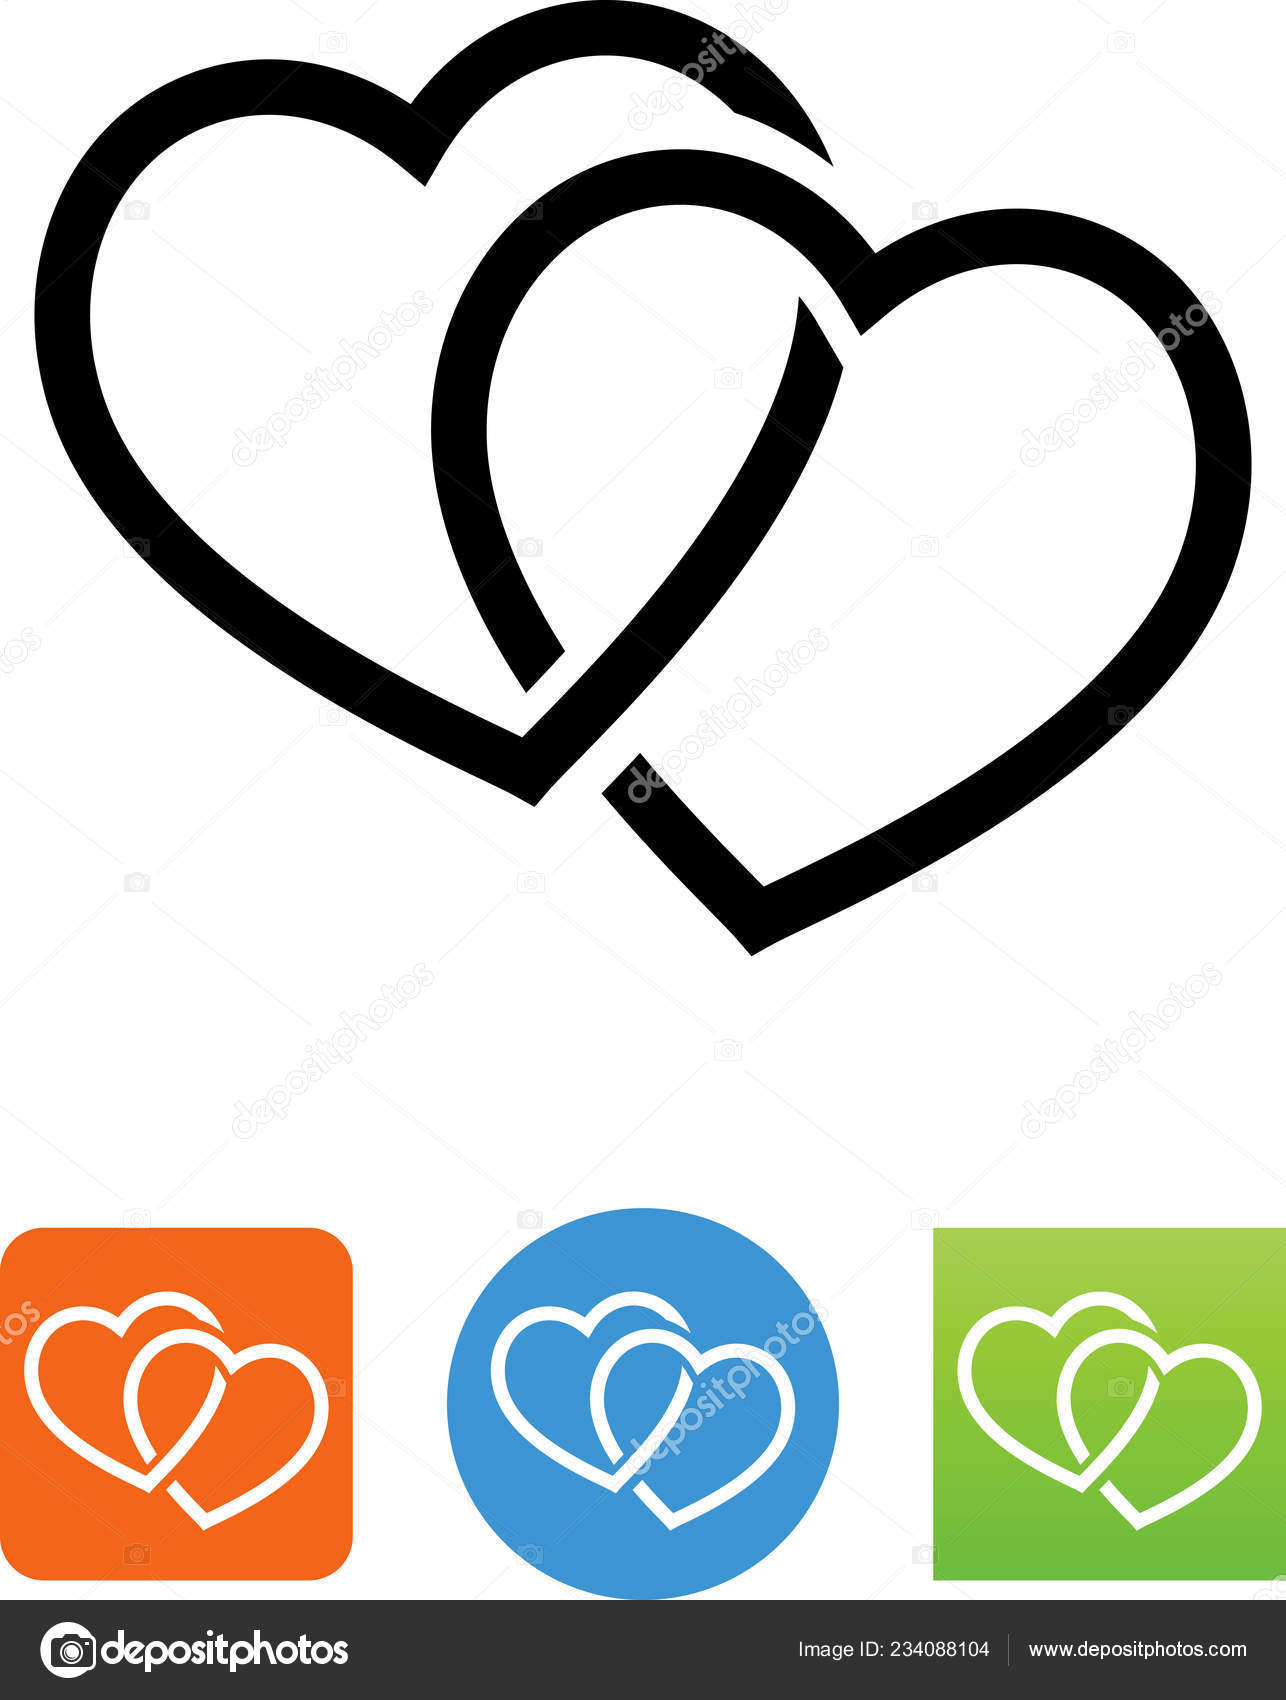 Clipart: intertwined hearts.